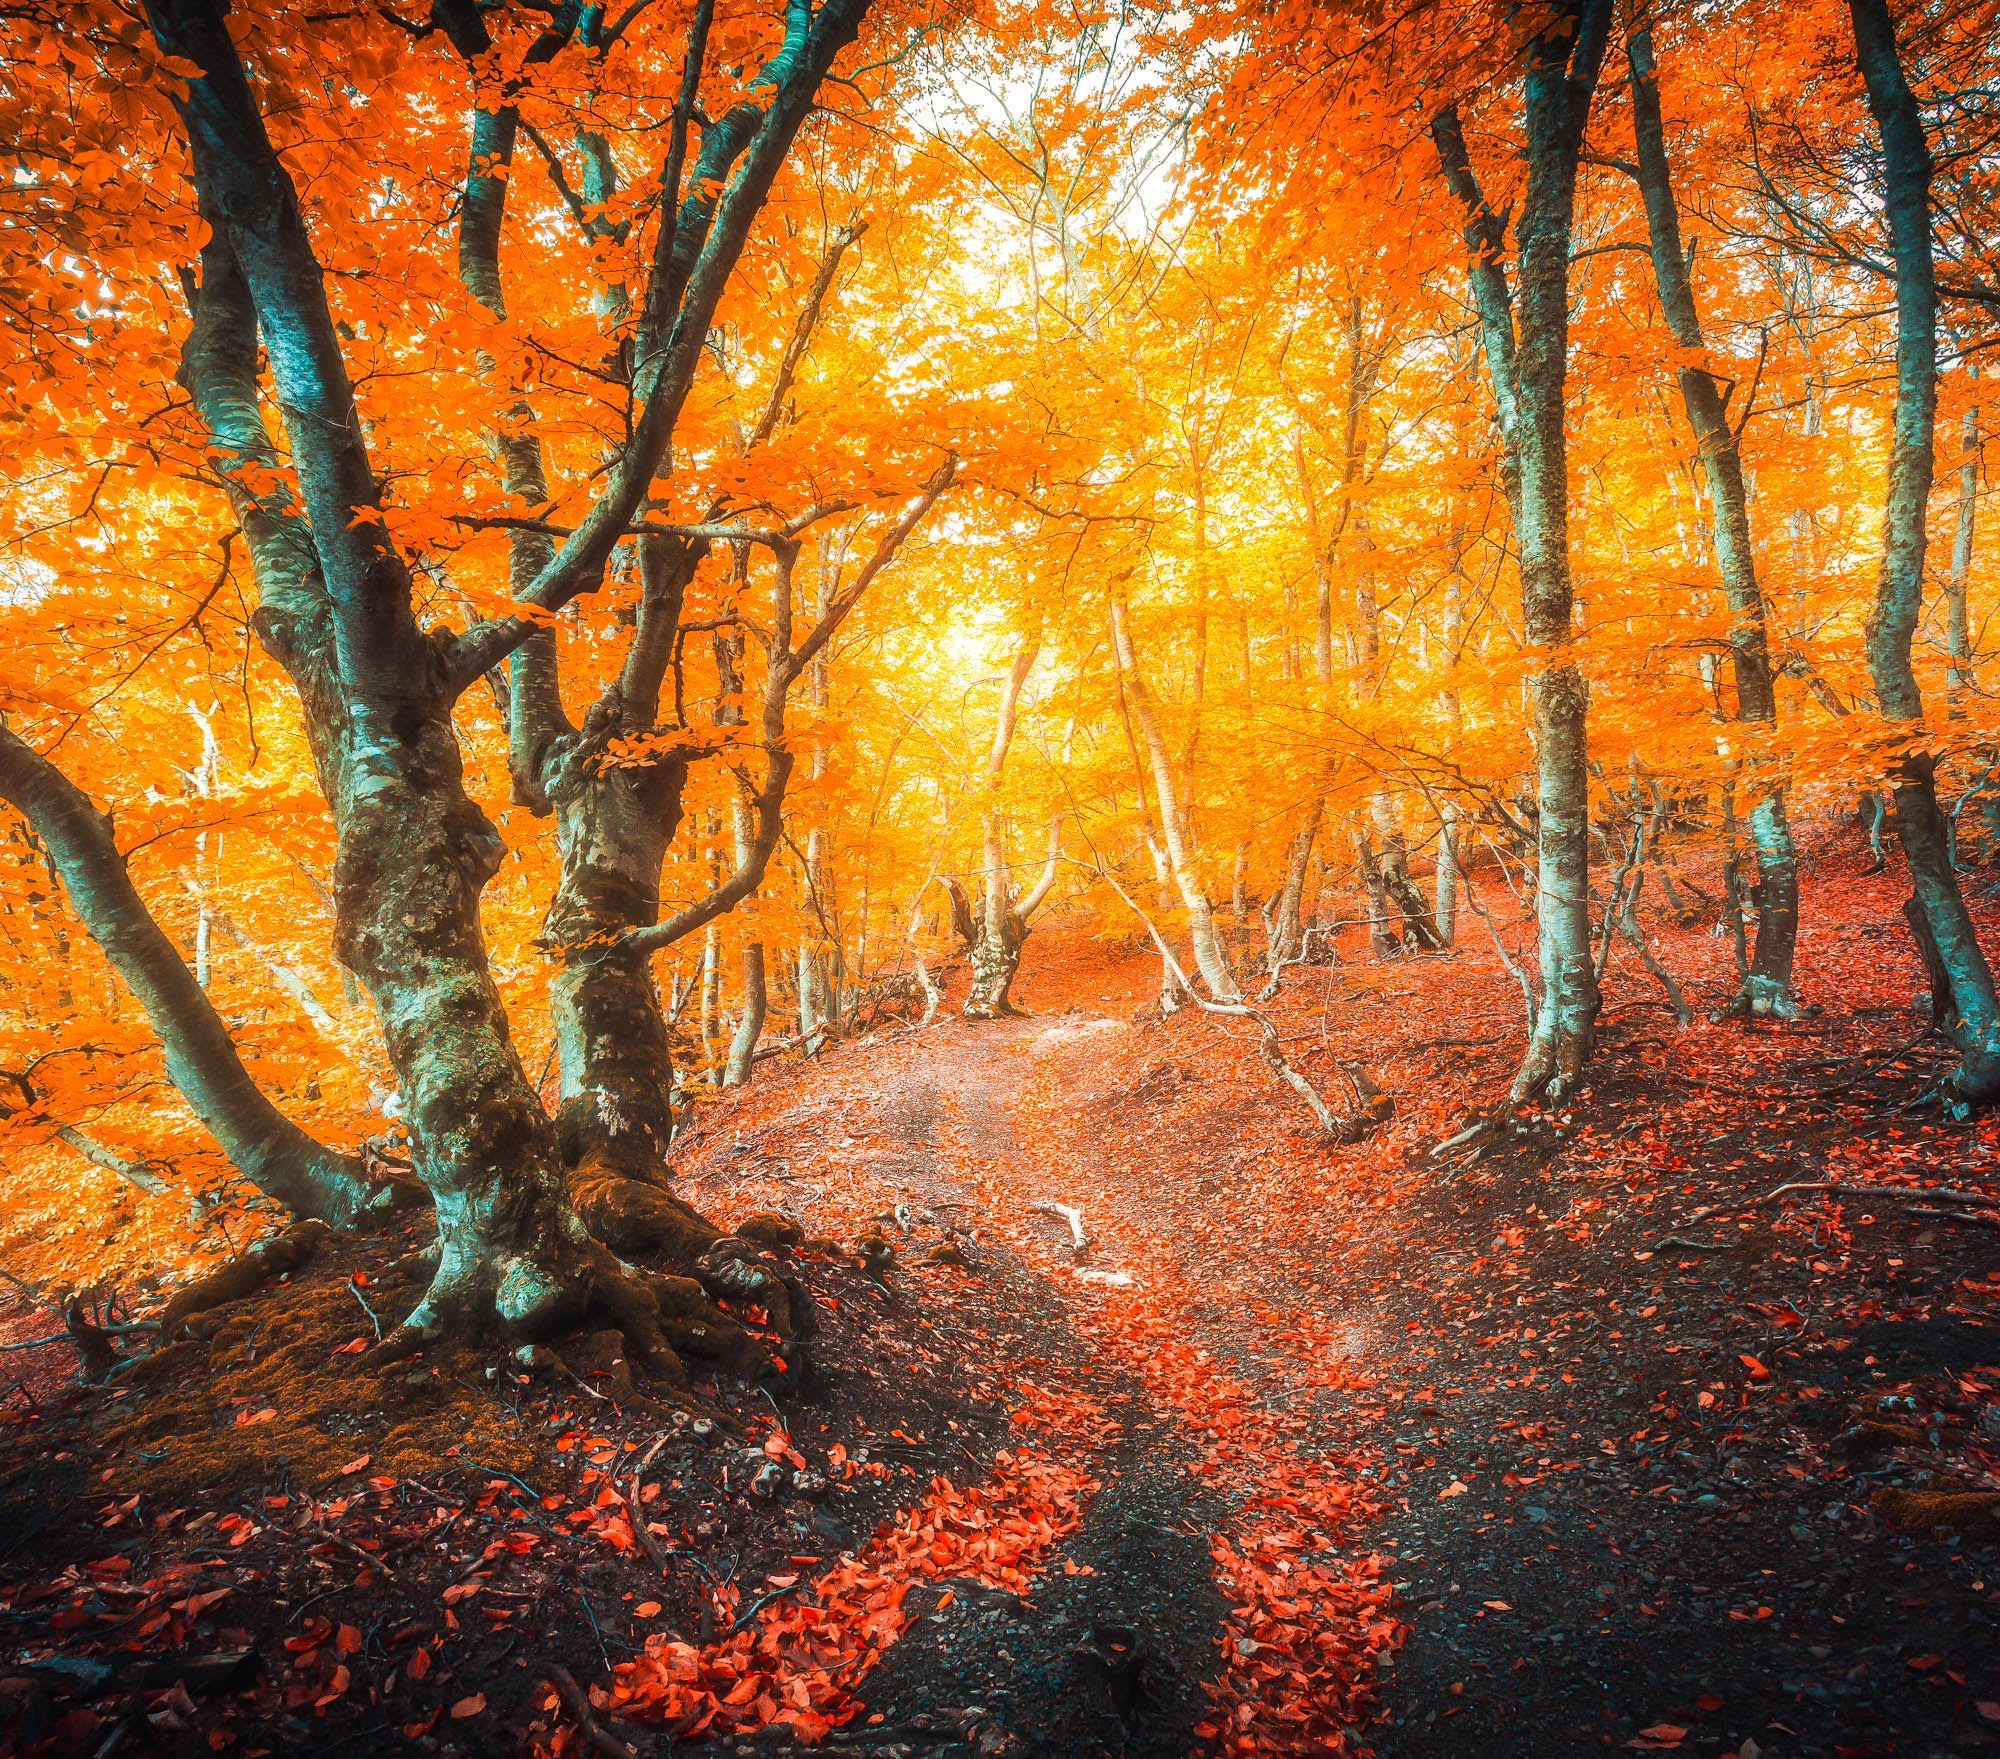 Fall Lightroom Preset - Bright and Vibrant